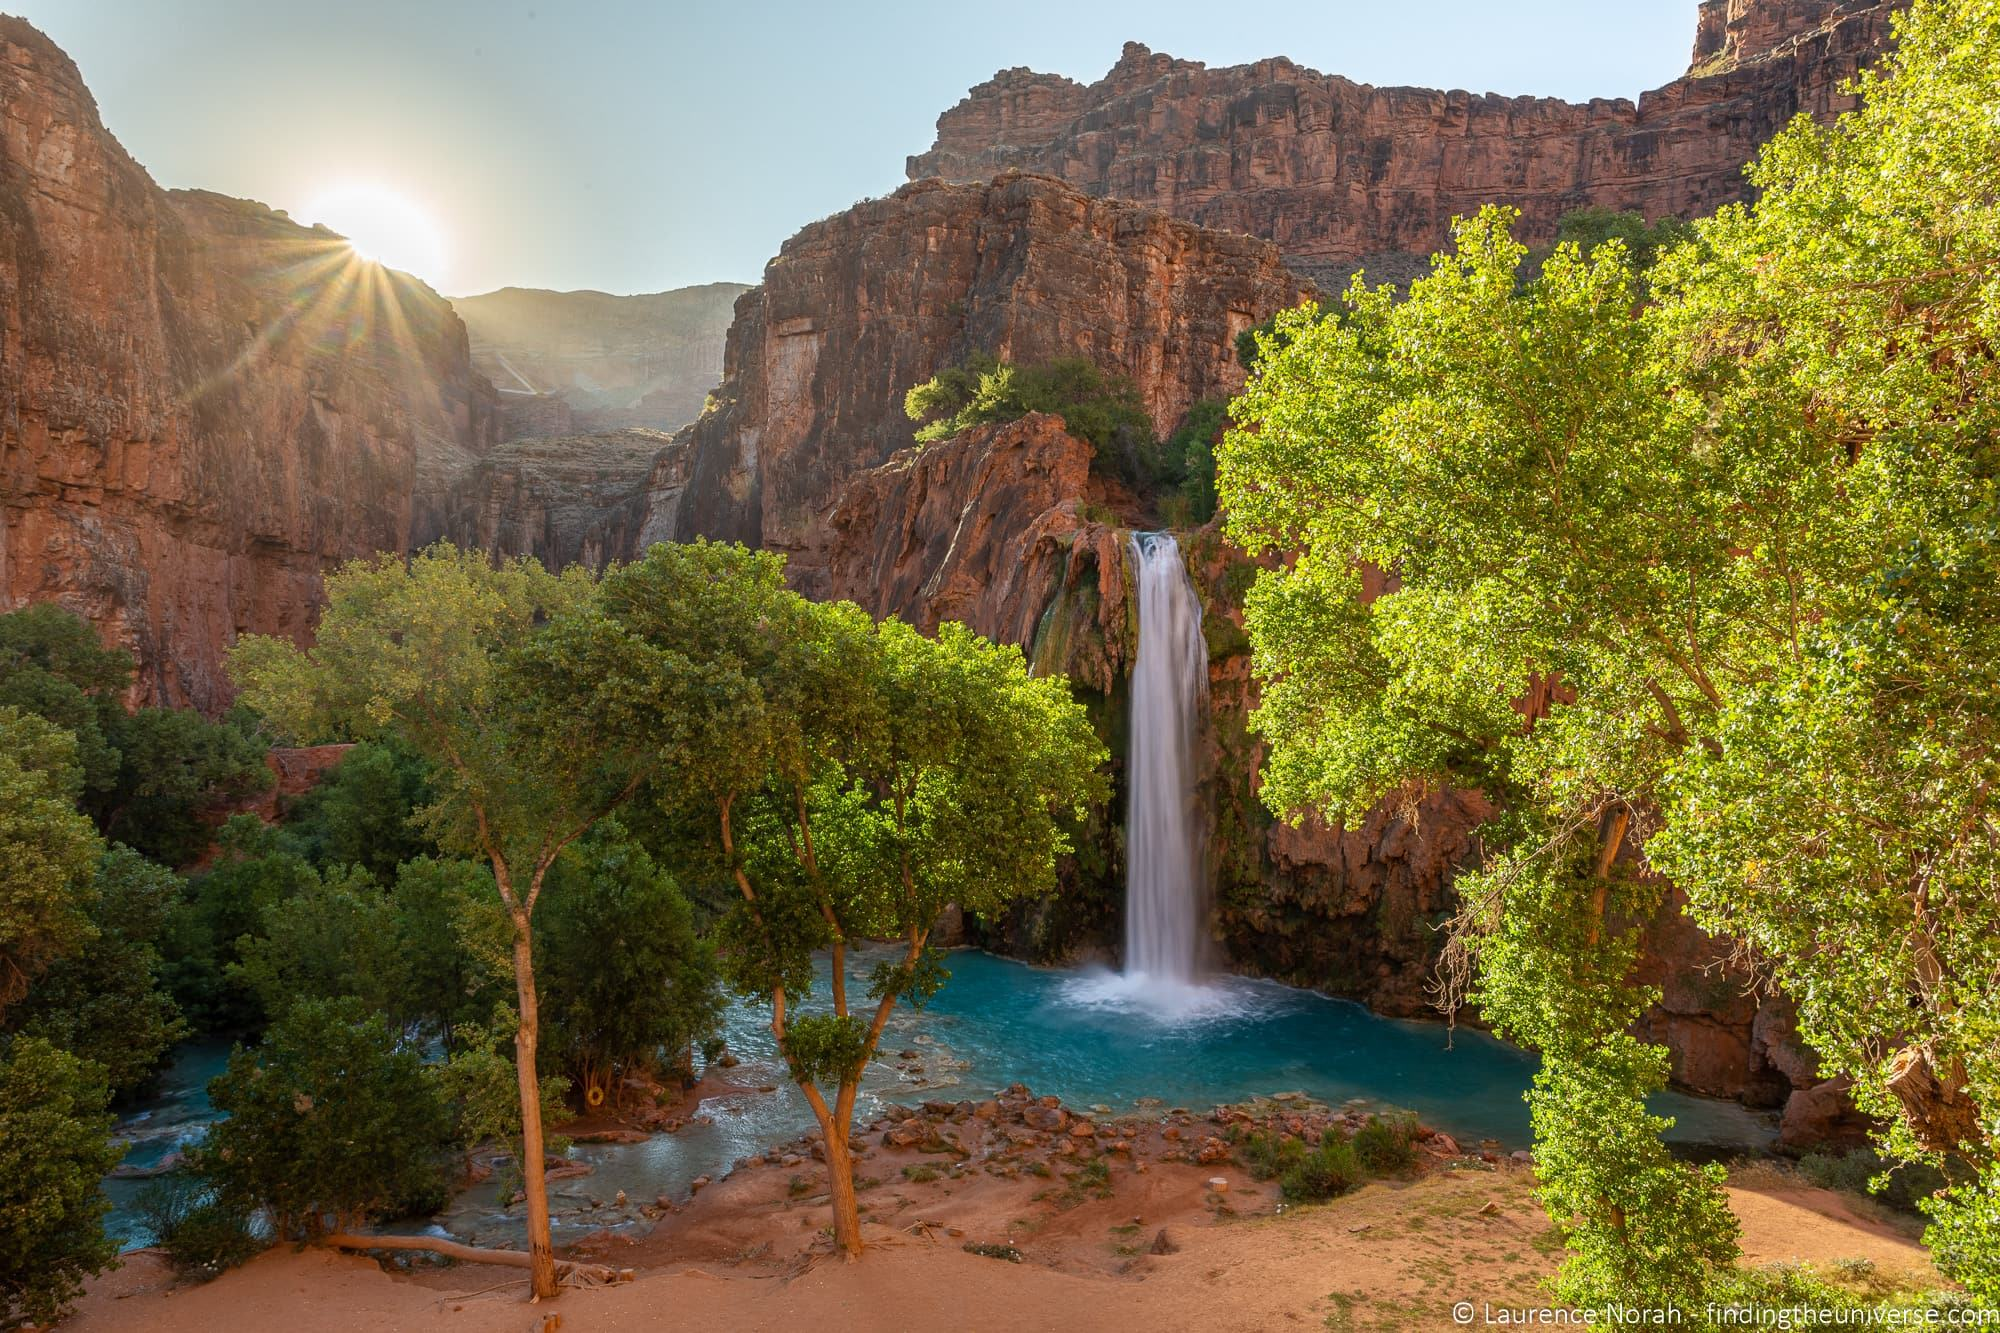 Guide to the Havasu Falls Hike in 15 + Map and Tips